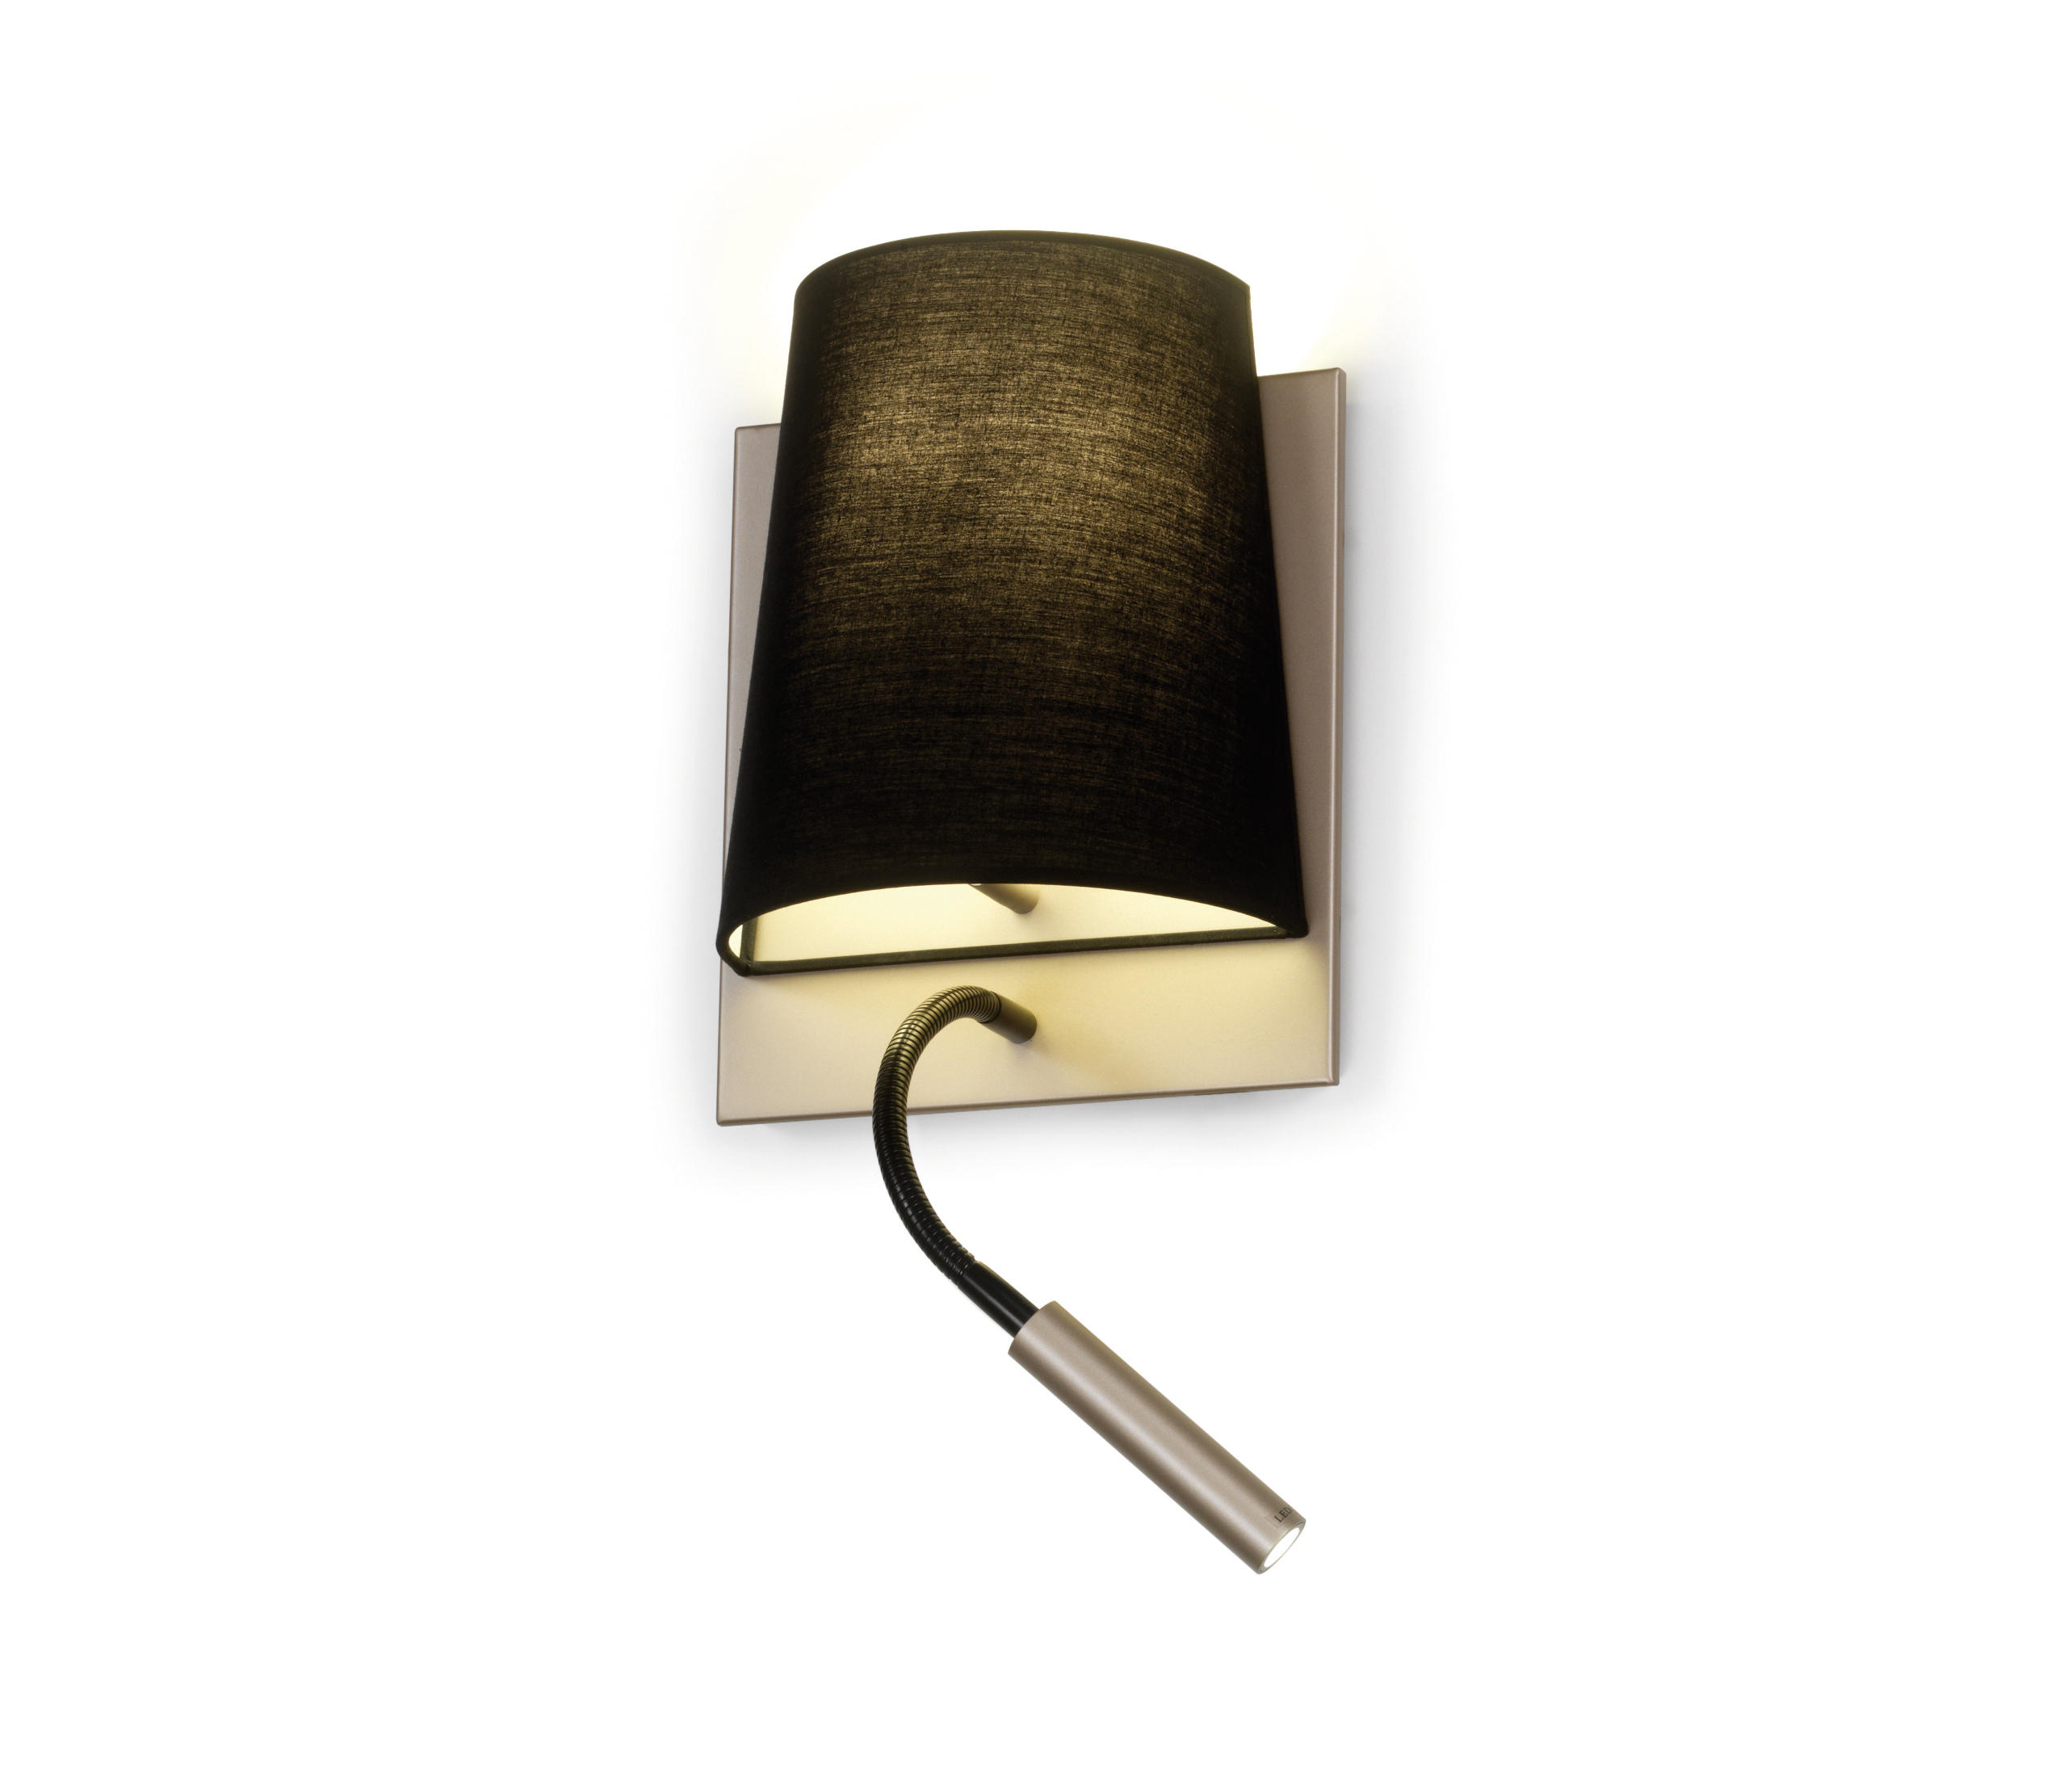 hotel reading lights from alma light architonic. Black Bedroom Furniture Sets. Home Design Ideas